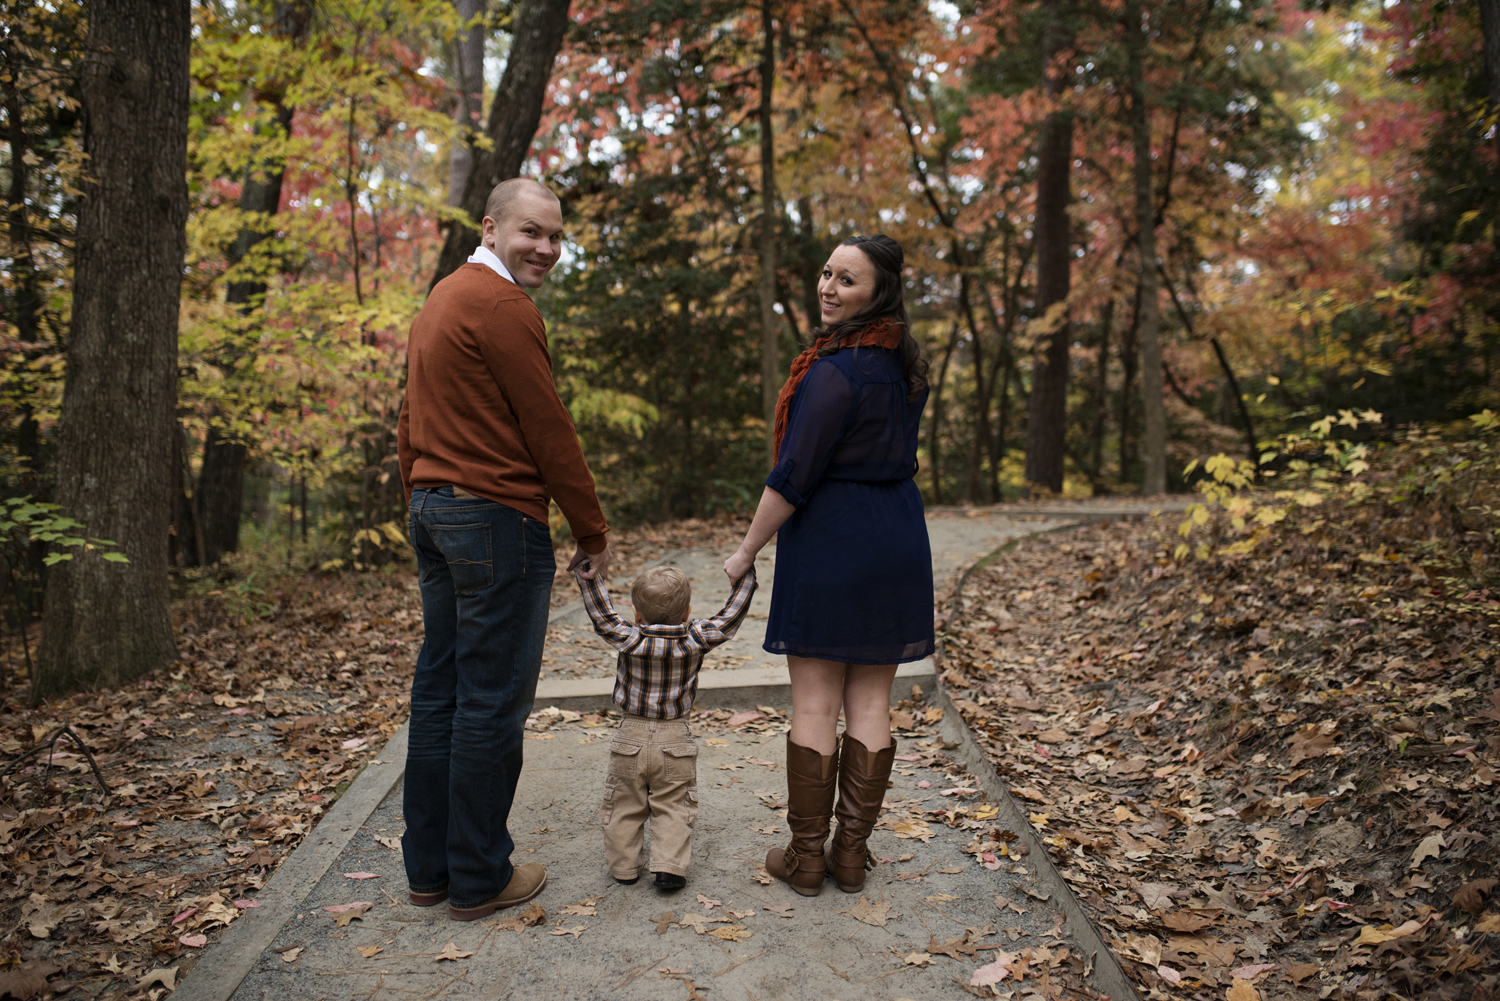 Family pictures with beautiful fall foliage